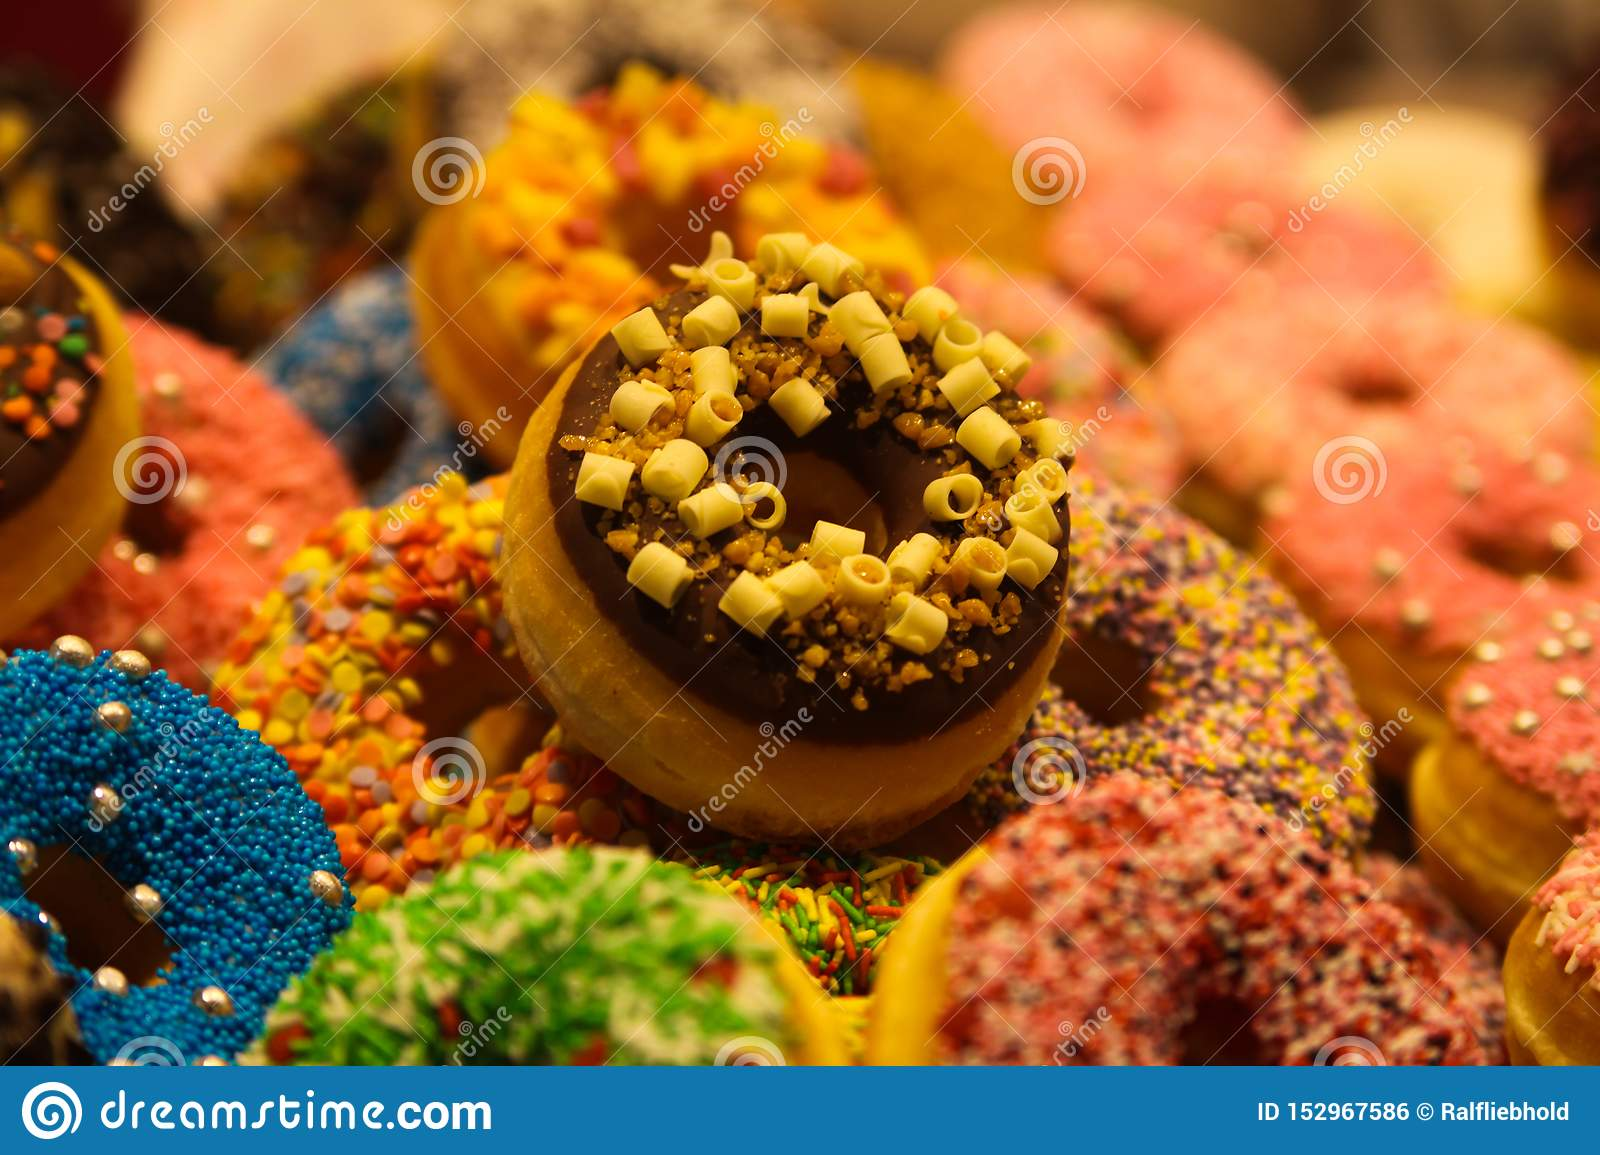 Exhibition of colorful donuts decorated with fancy crumbles in the market hall of Rotterdam, Netherlands